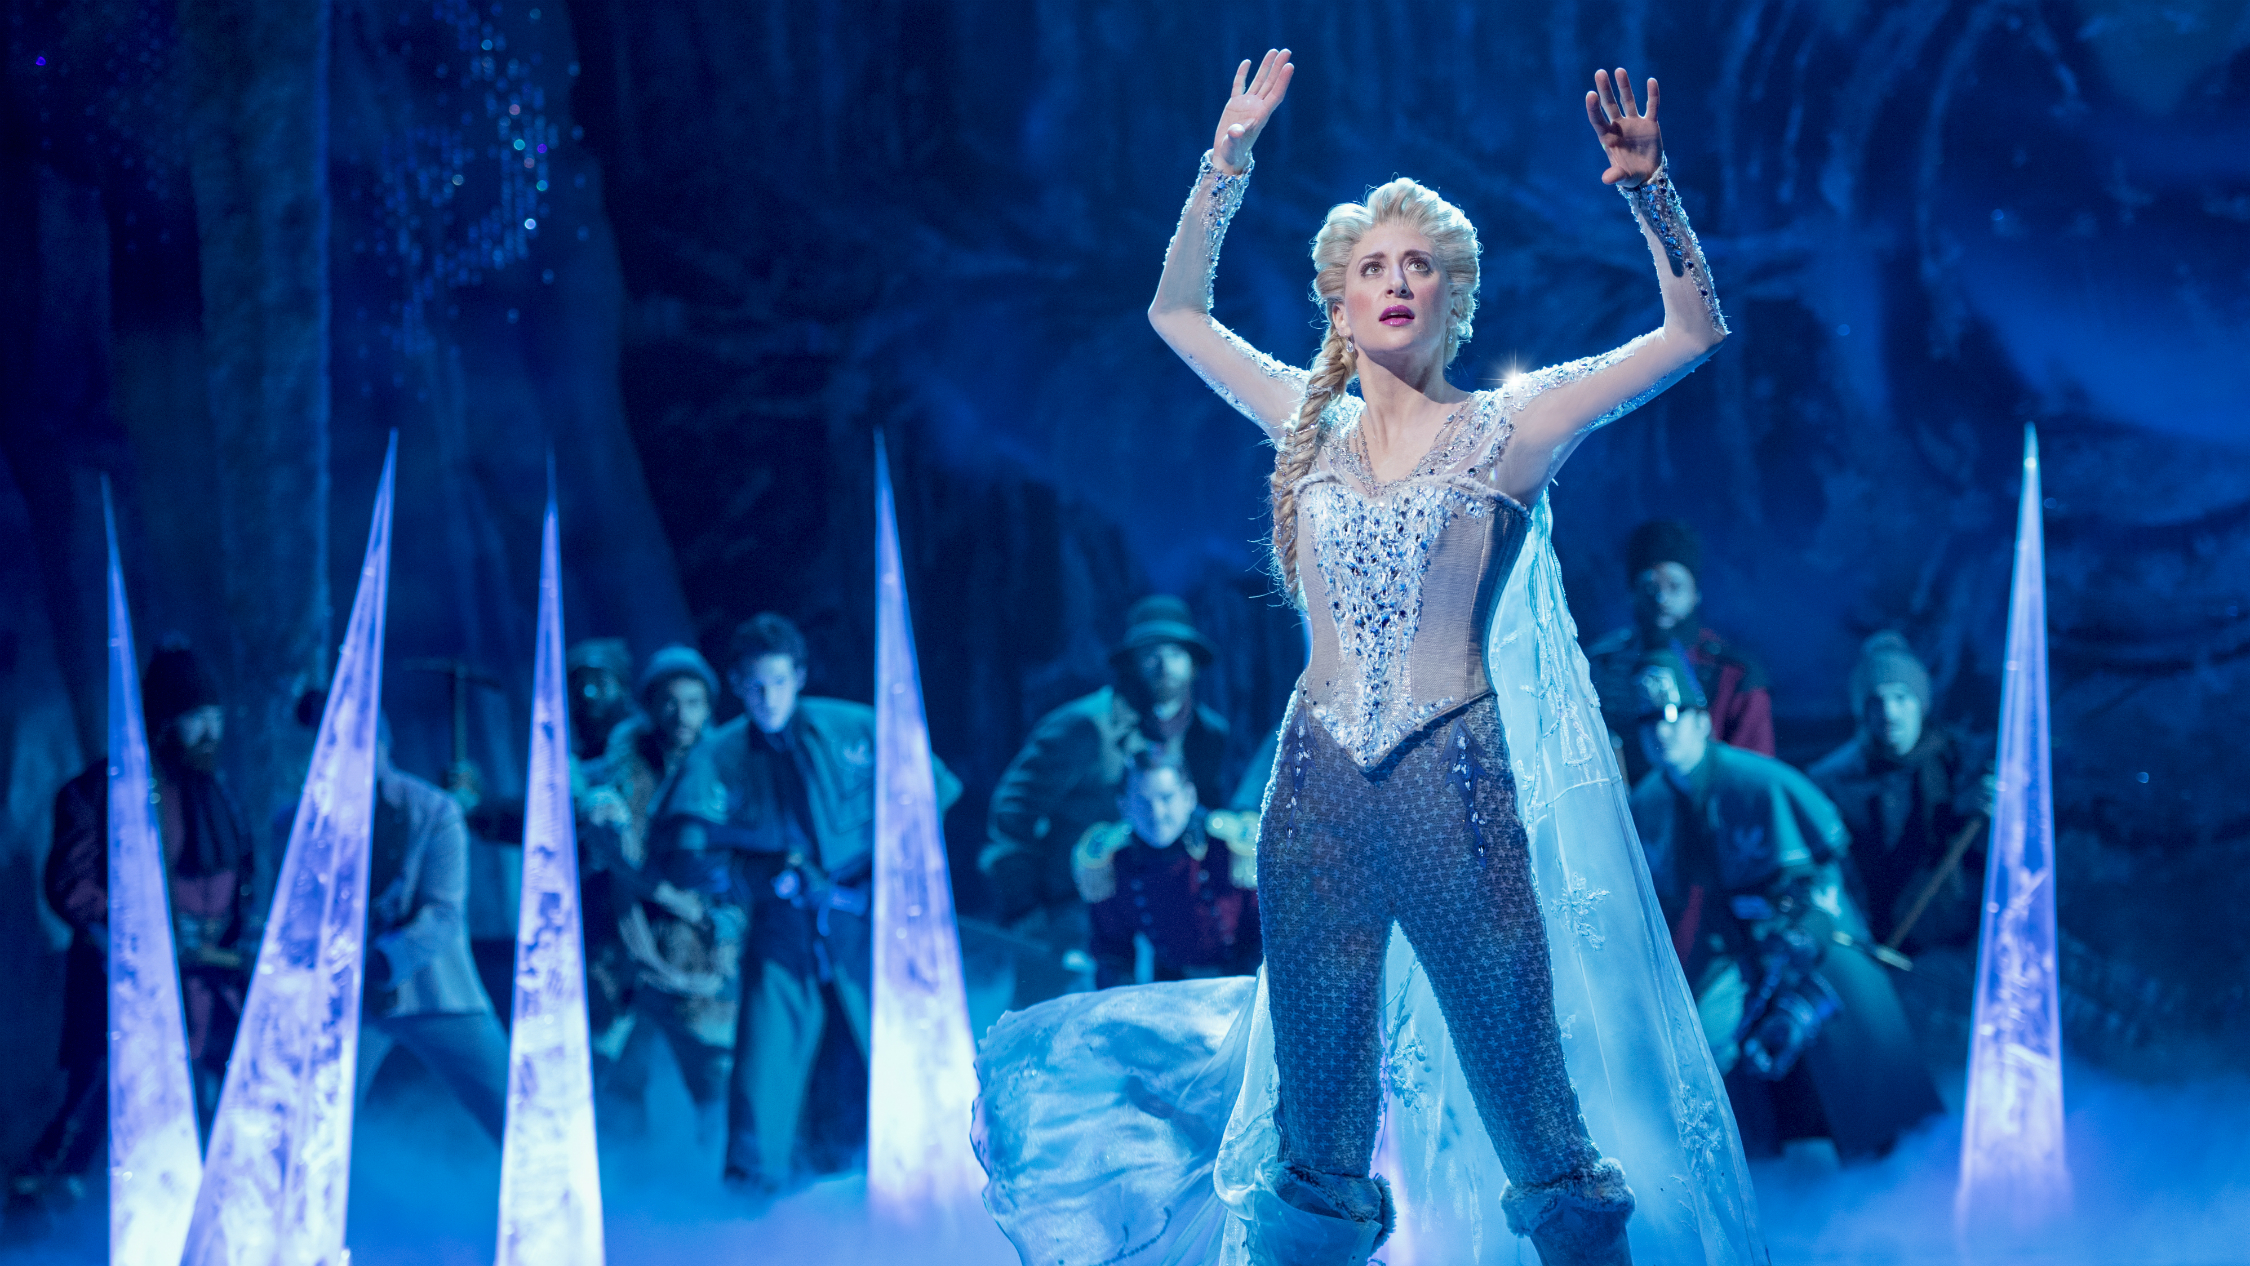 Disney's Frozen musical is coming